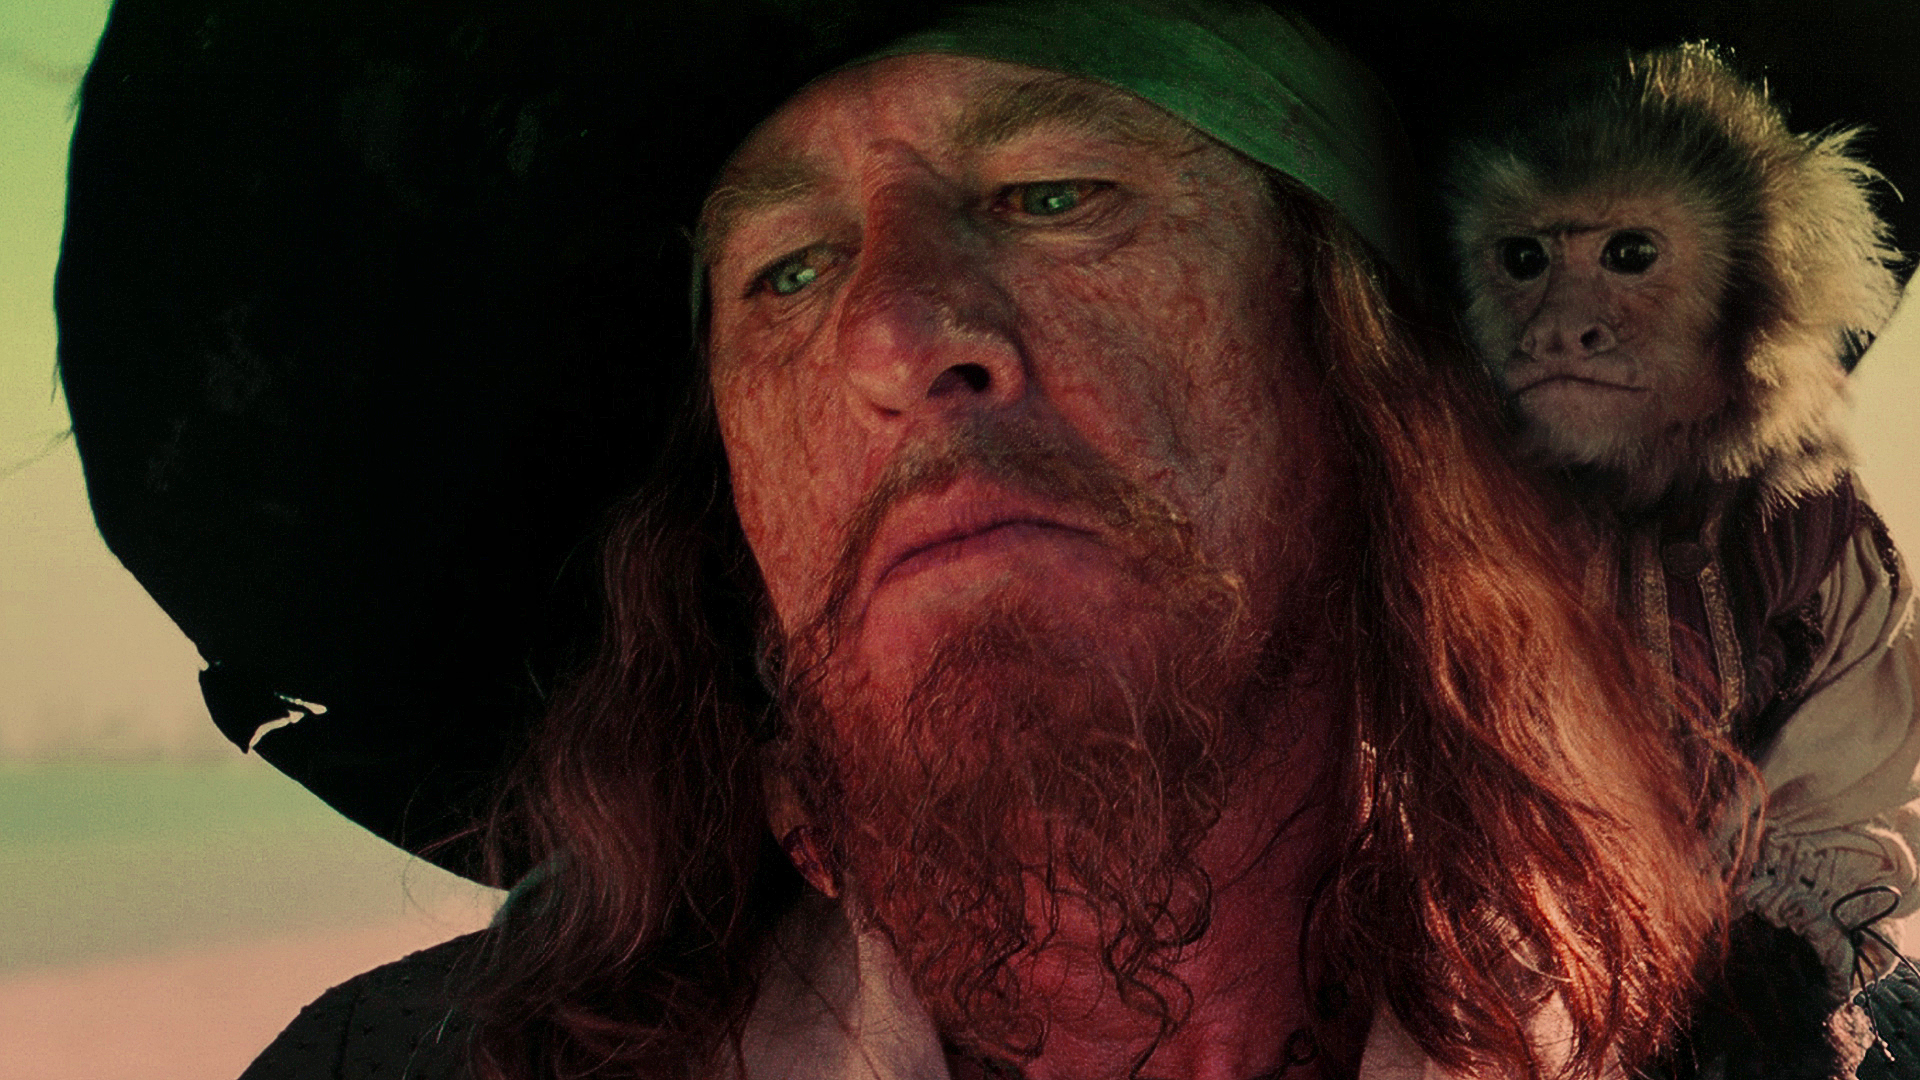 Photo of actor Geoffrey Rush as Barbossa in Pirates of the Caribbean